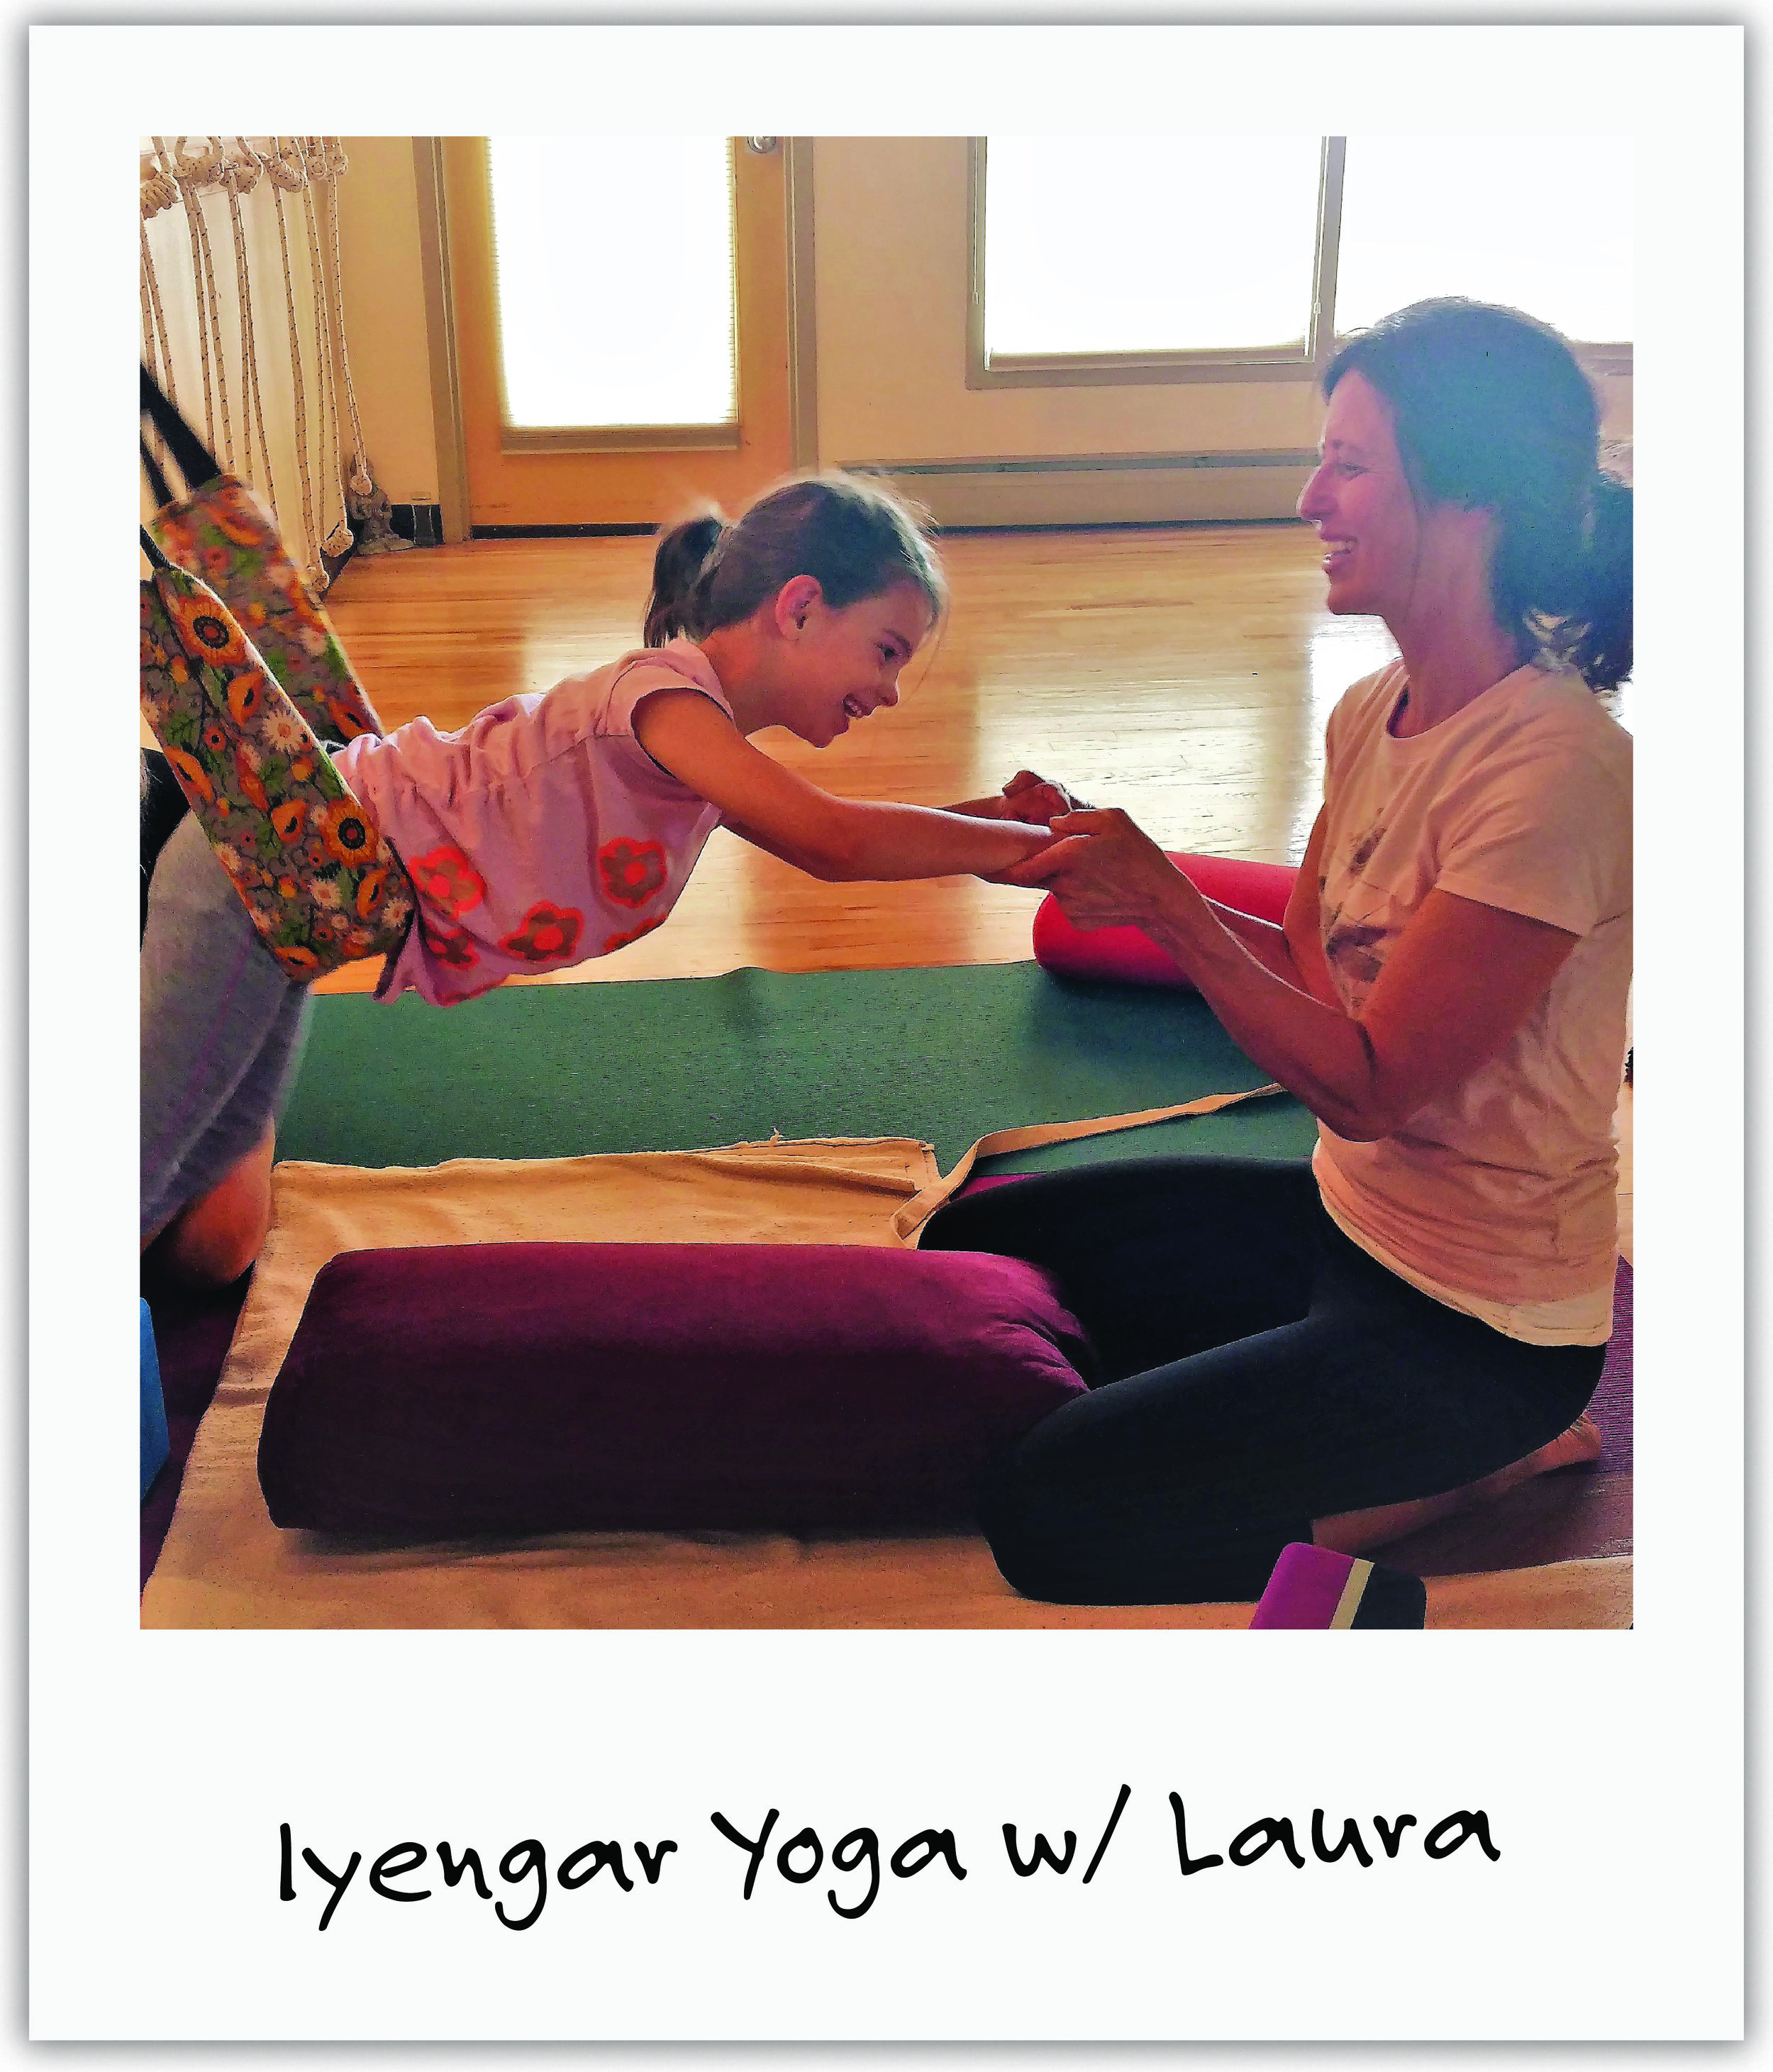 Renowned Iyengar yoga teacher, Laura, met Mila and has since created a deep connection with her through a unique restorative approach to neurological disease in children.